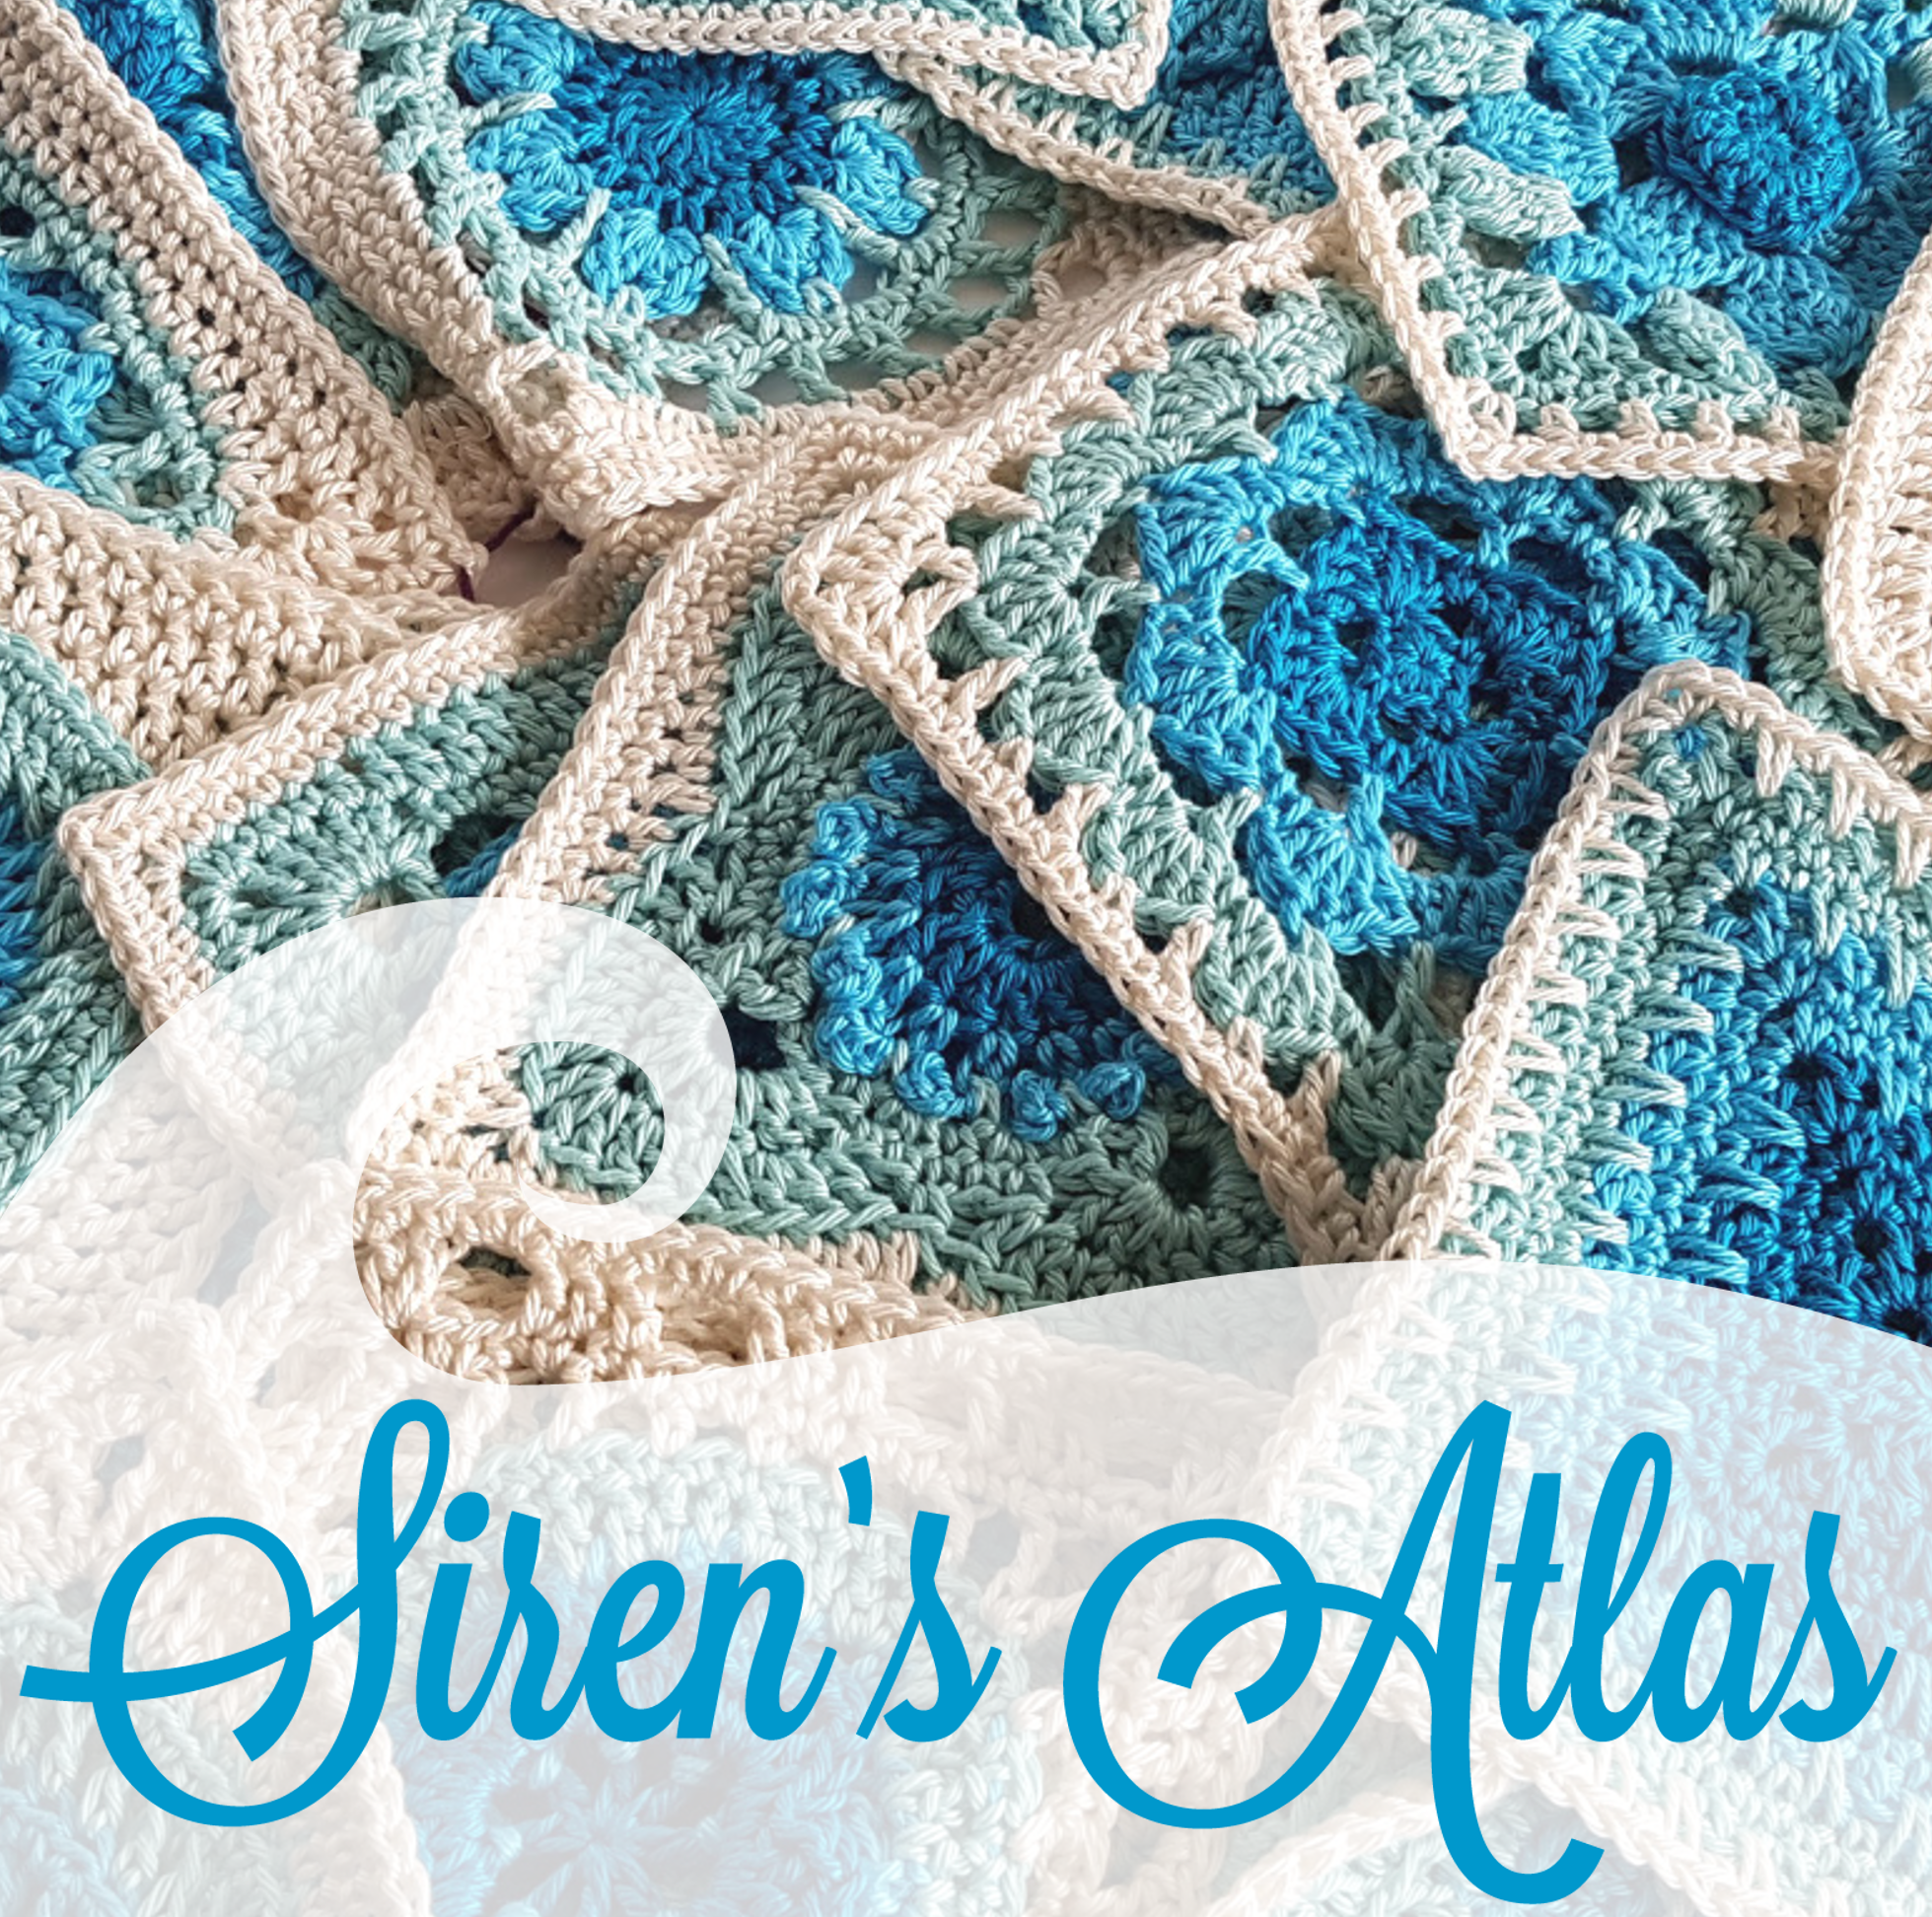 Reversible Faux Knit Crochet Tutorial - spincushions